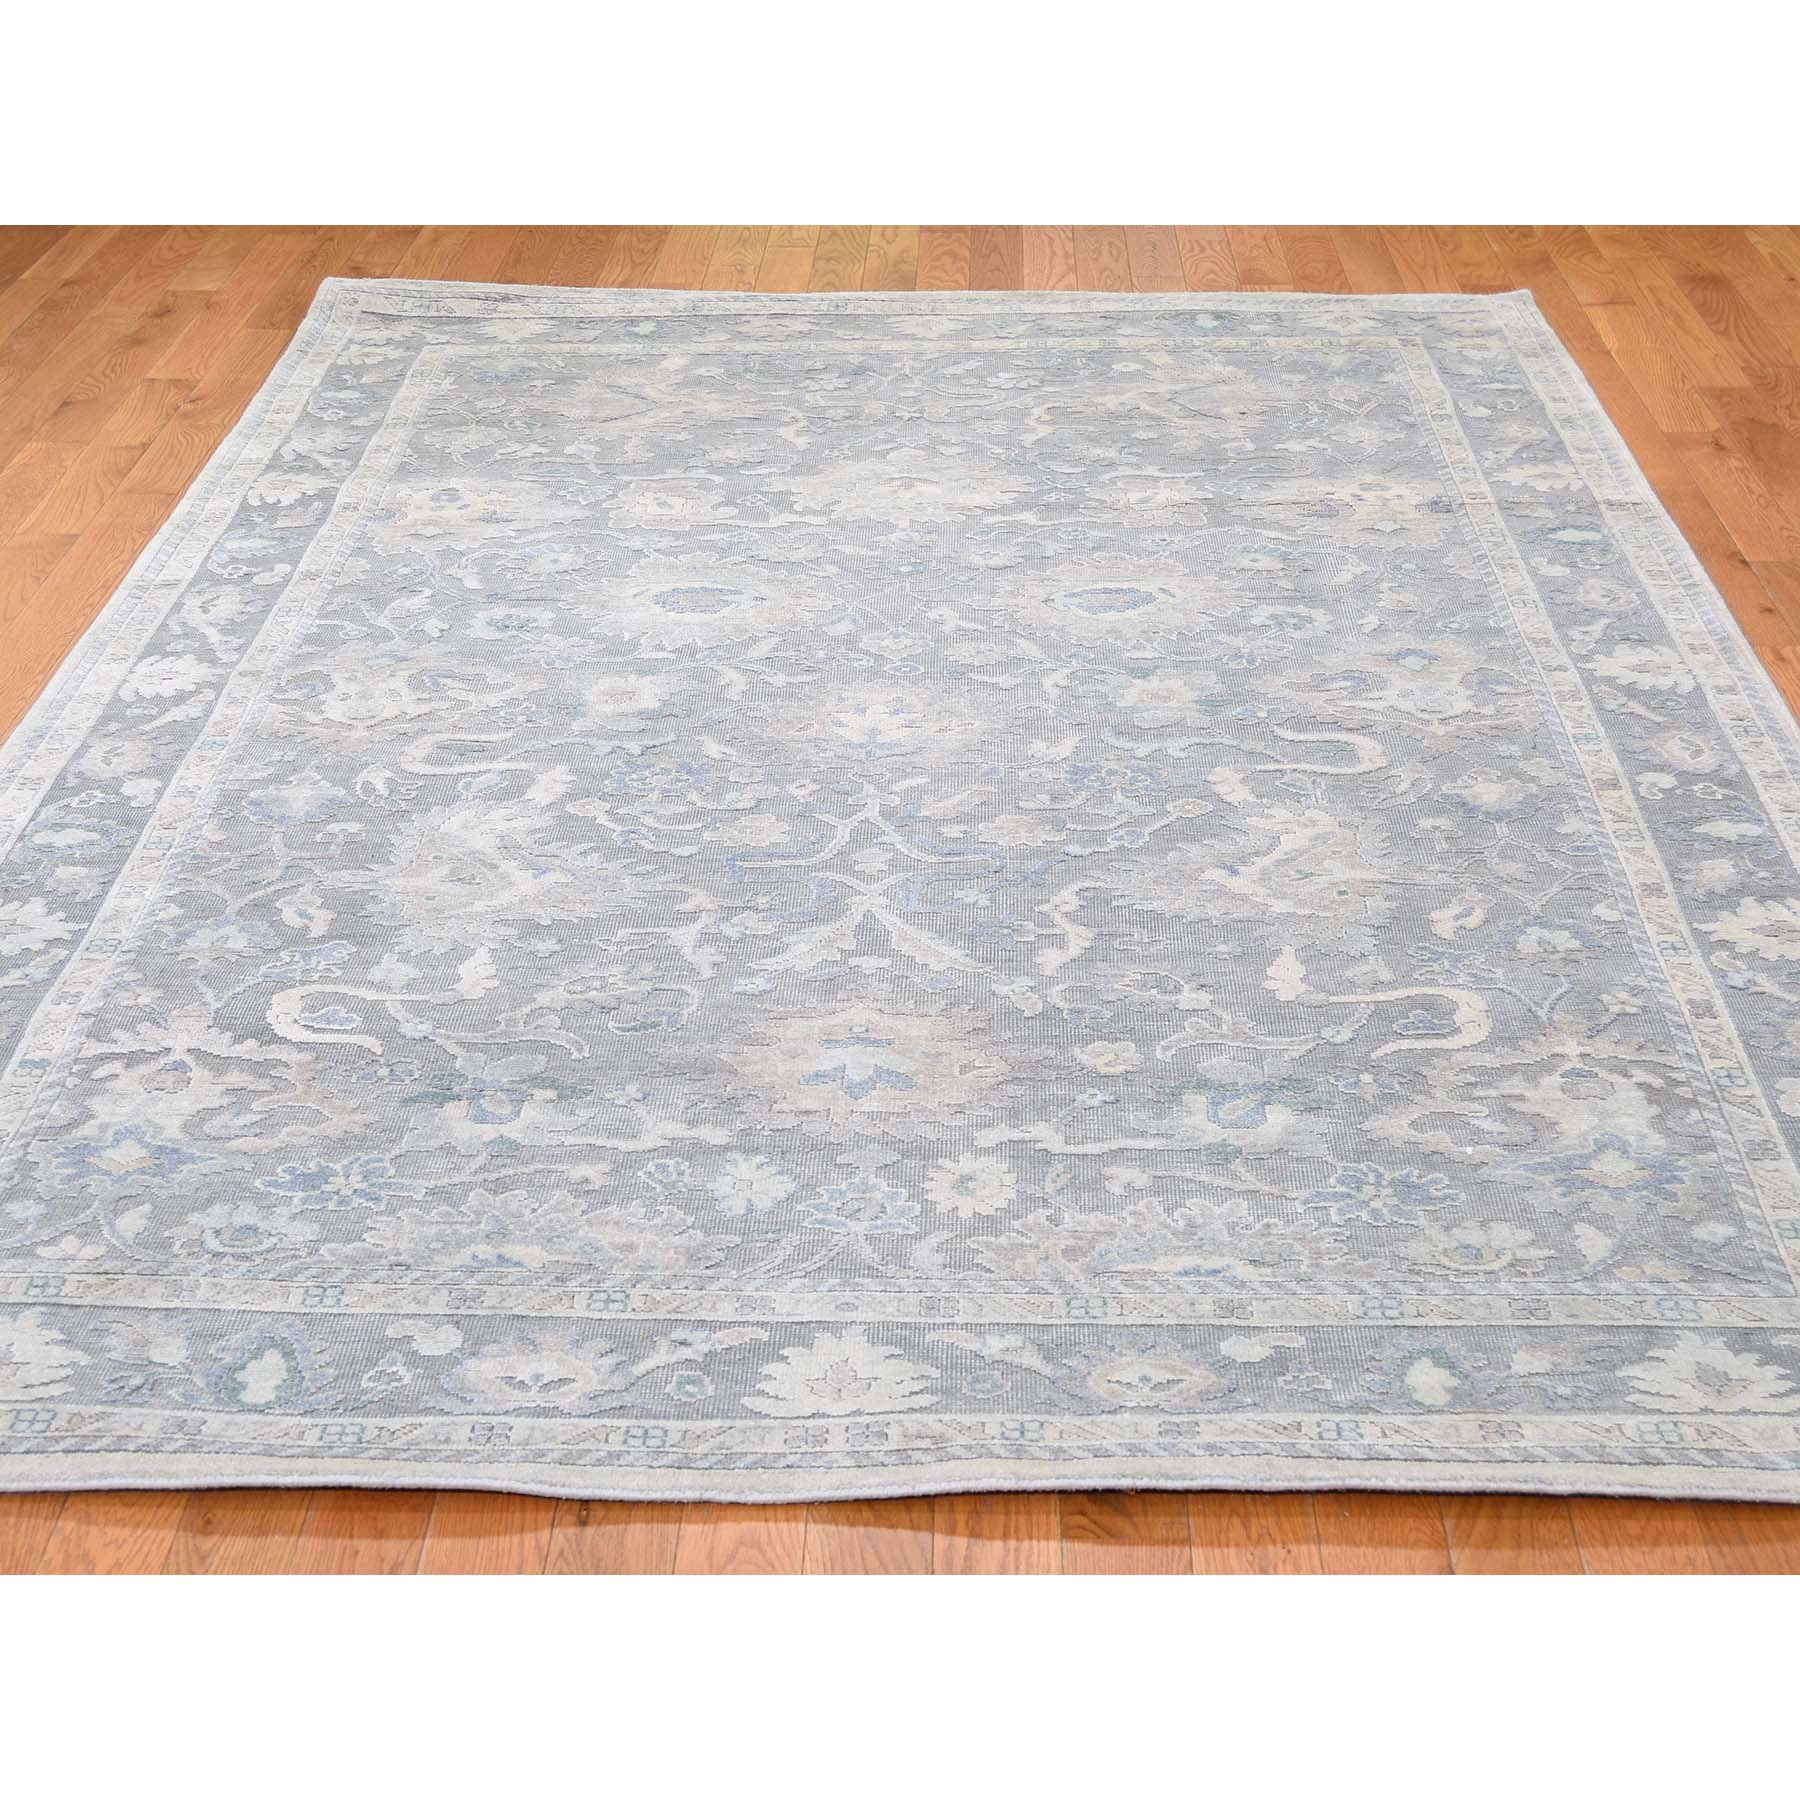 6-1 x8-9  Hand-Knotted Oushak Influence Silk Oxidized Wool Oriental Rug